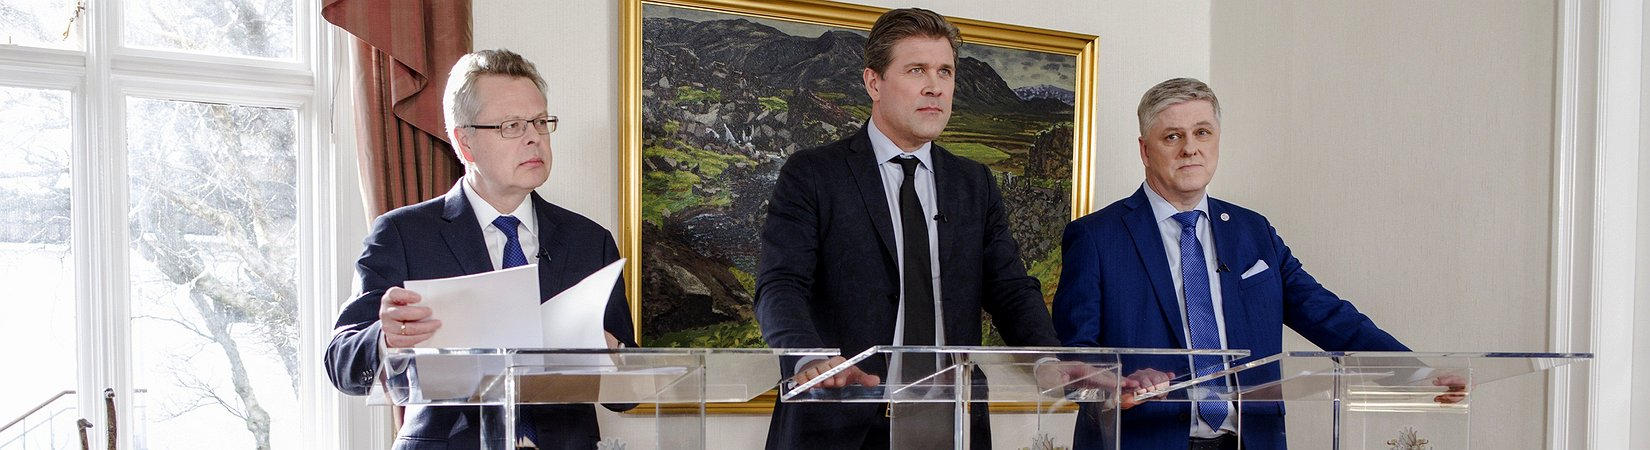 Iceland to lift capital controls nine years after GFC